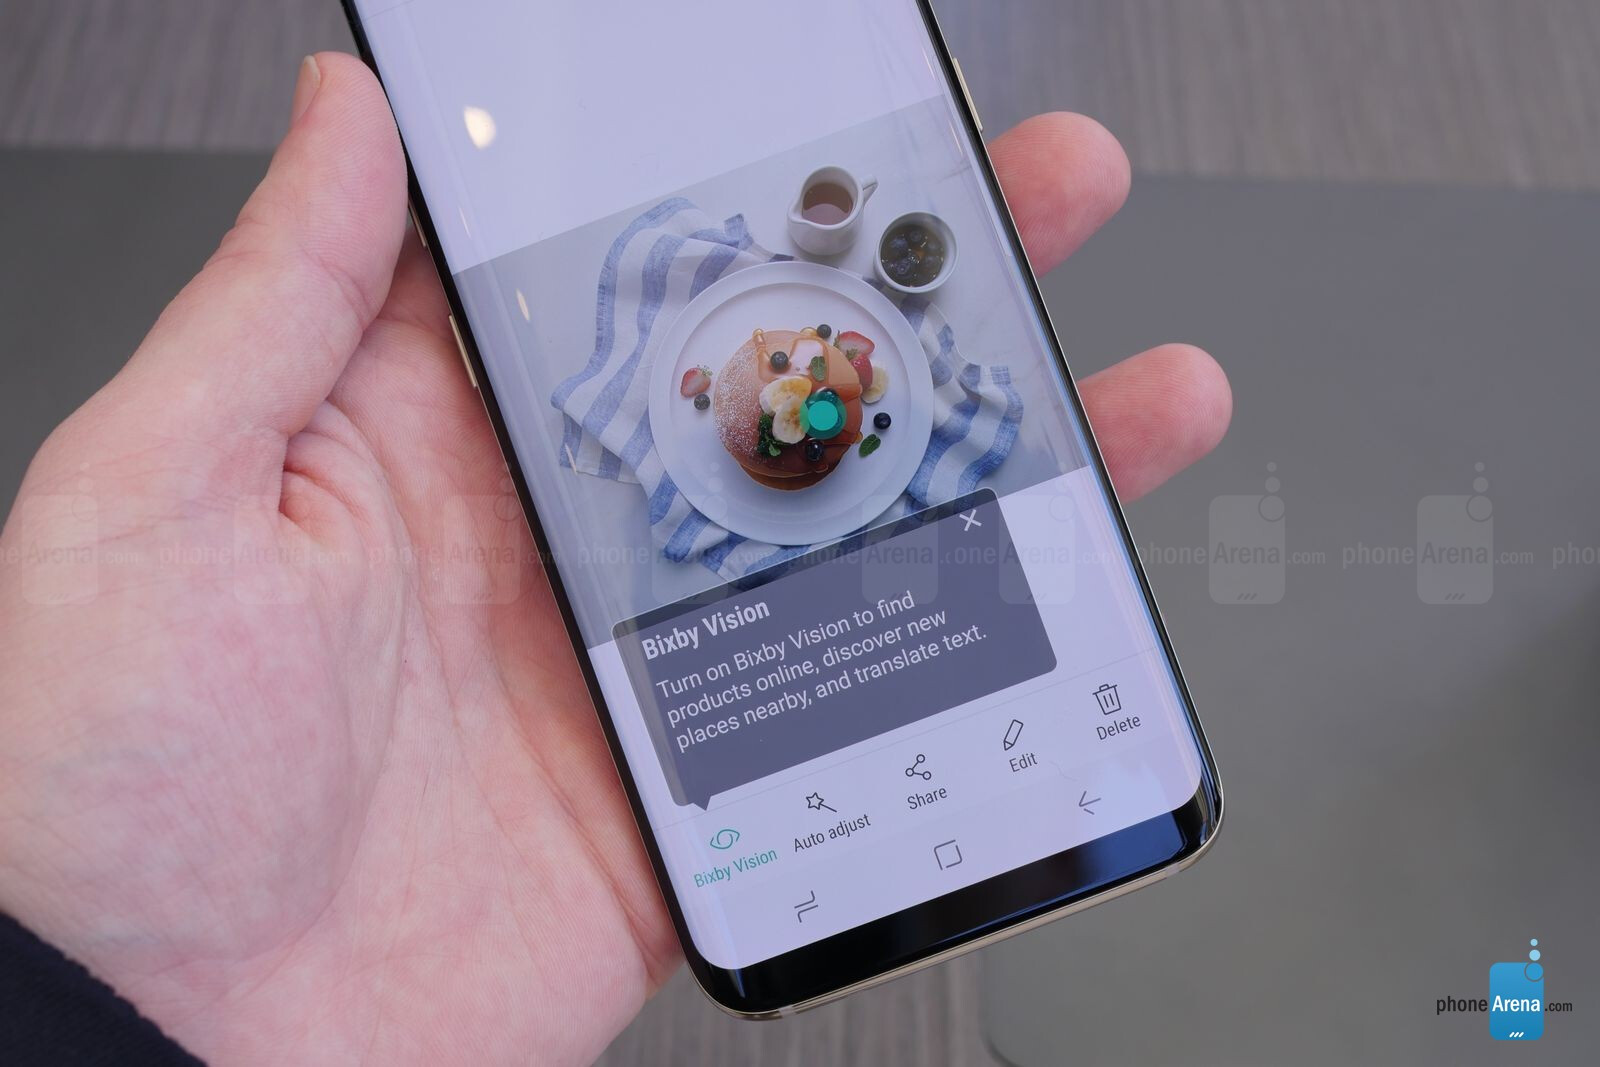 Samsung Bixby hands-on: What you can do with the new GS8